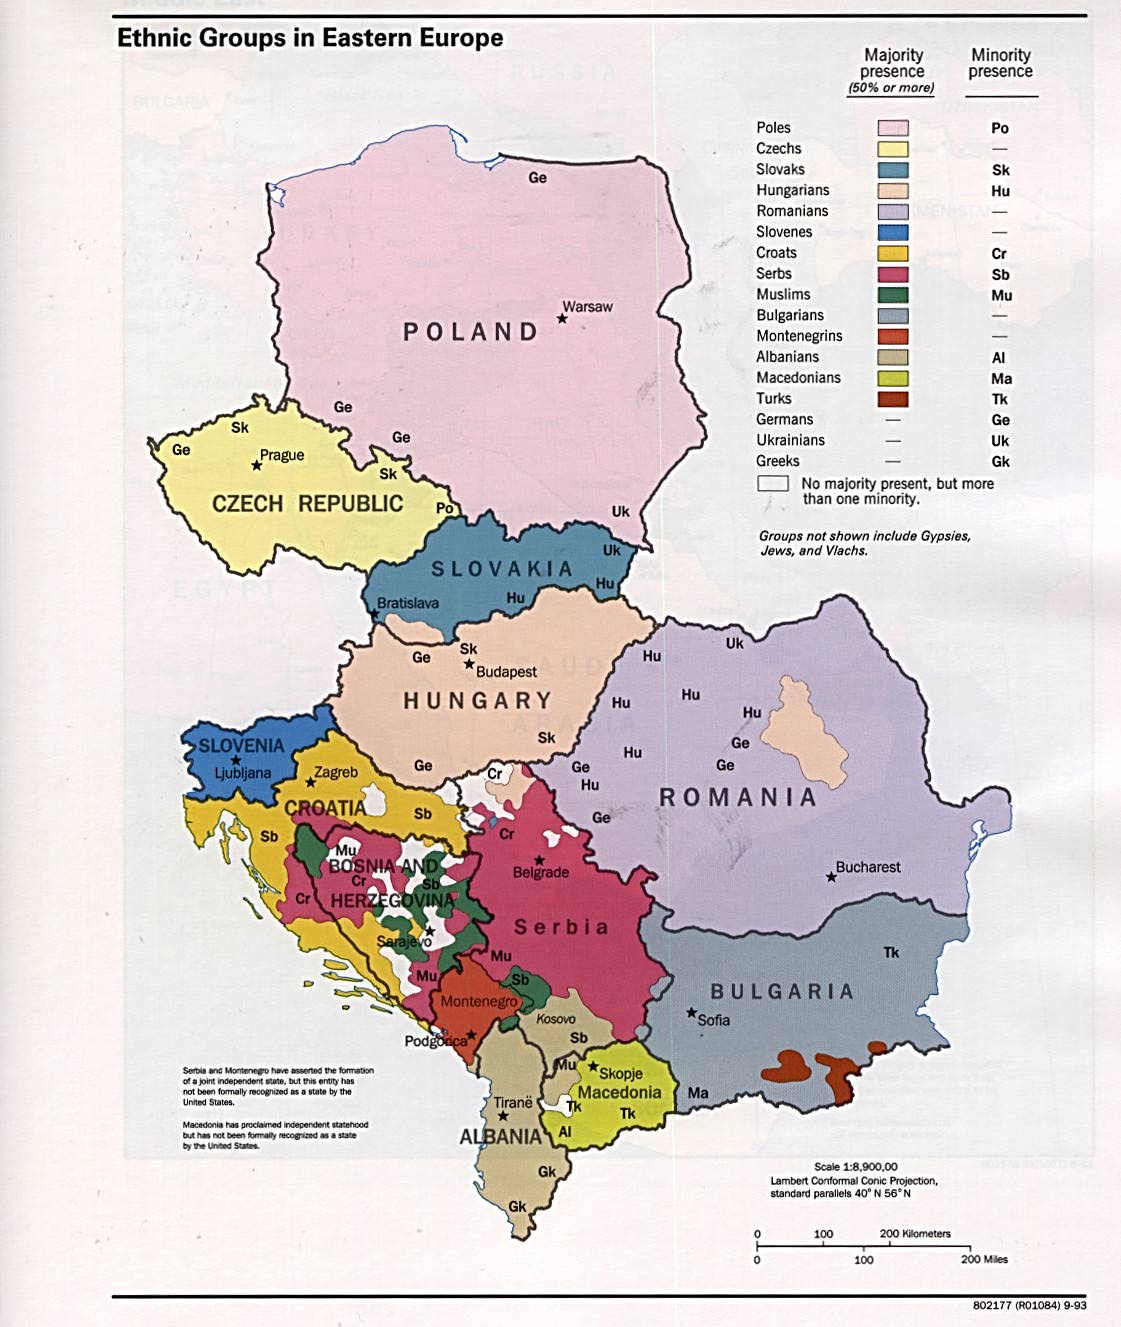 Ethnic groups in Eastern Europe 1993